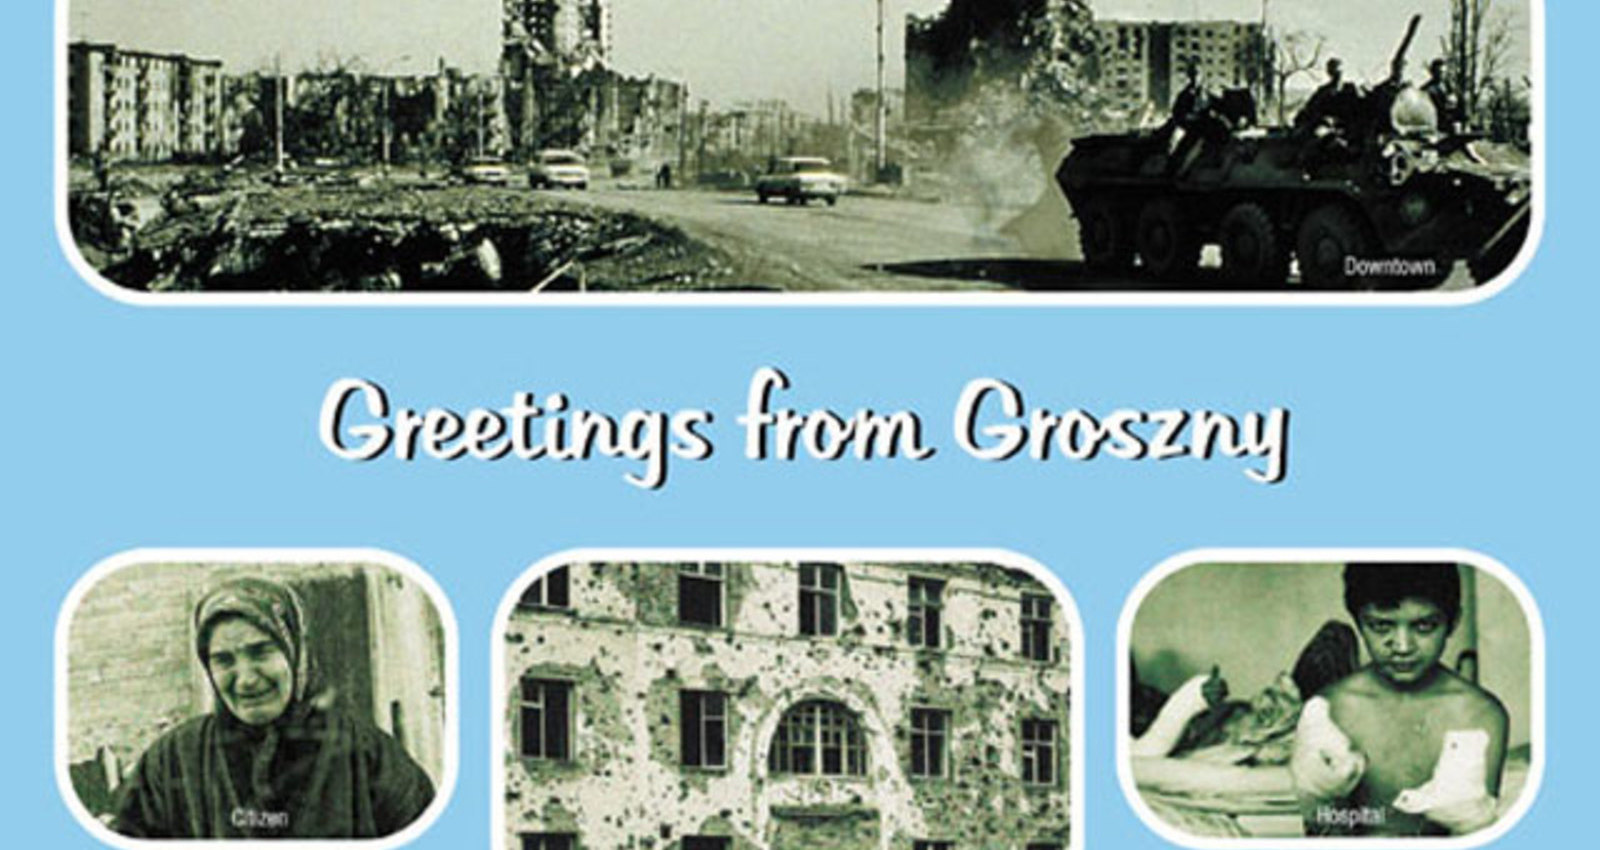 The greetings from hell postcards